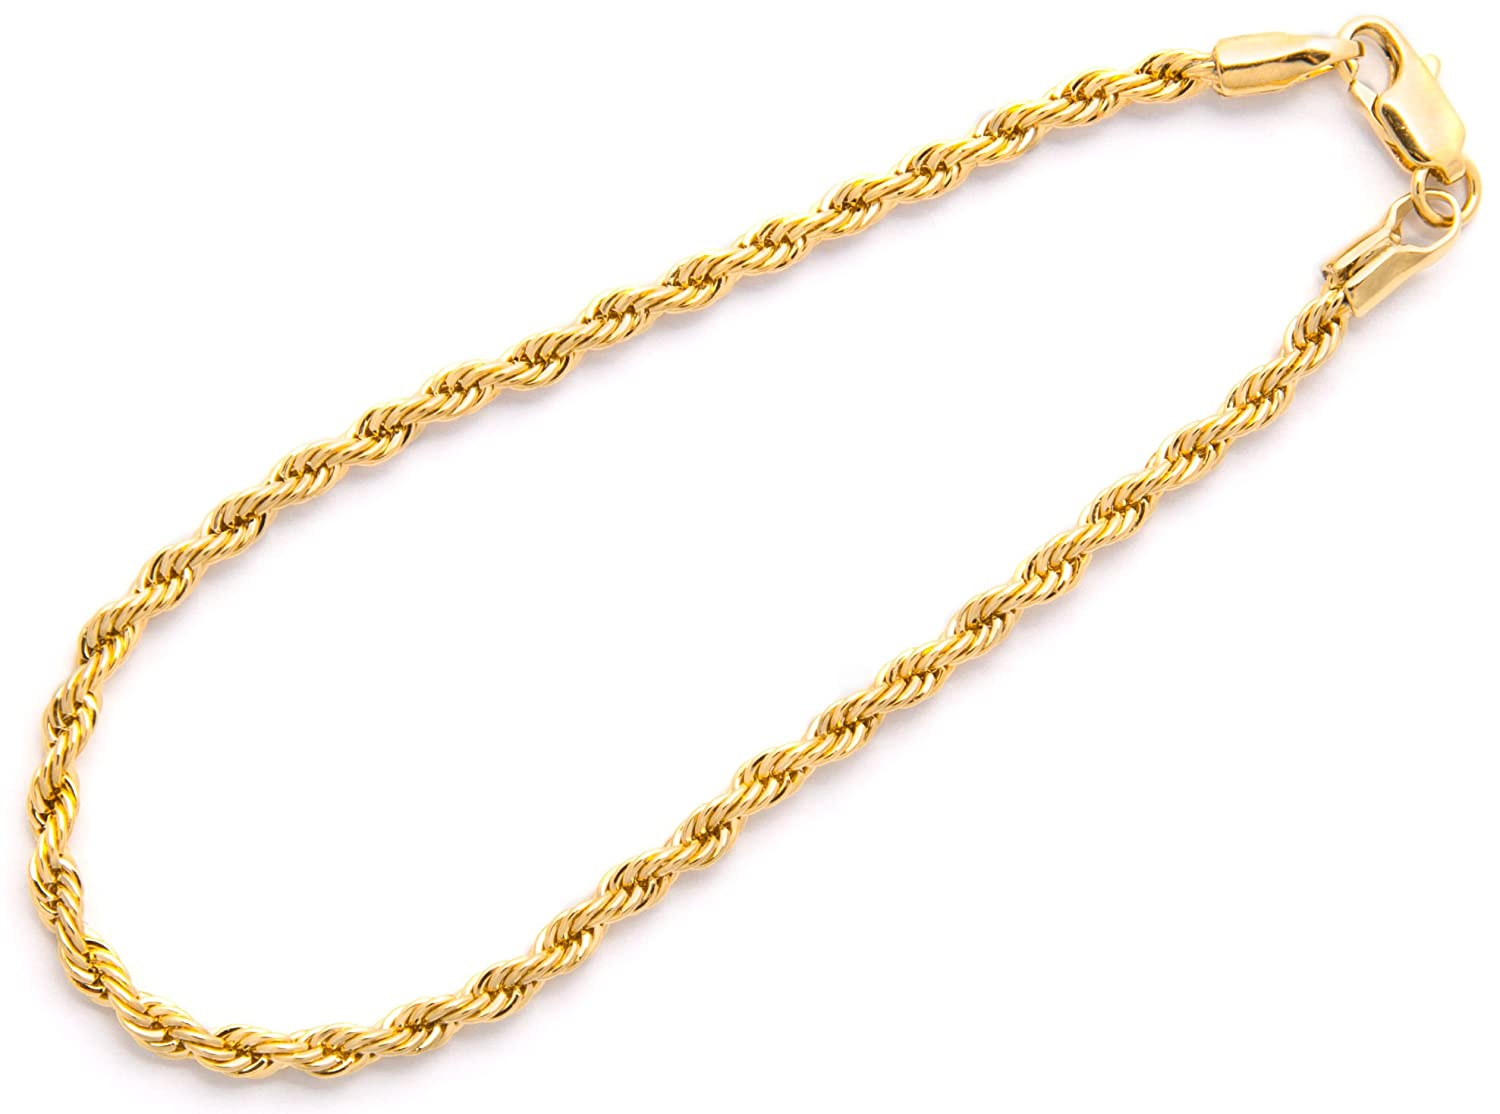 Lifetime Jewelry 3mm Rope Chain Gold Bracelet for Men and Women - Up to 20X More 24k Plating Than Other Plated Bracelets - Beautiful Piece of Gold Jewelry for Women and Men 7 8 and 9 inches Diamond Cut 24K Gold with Inlaid Bronze Premium Fashion Jewelry Re